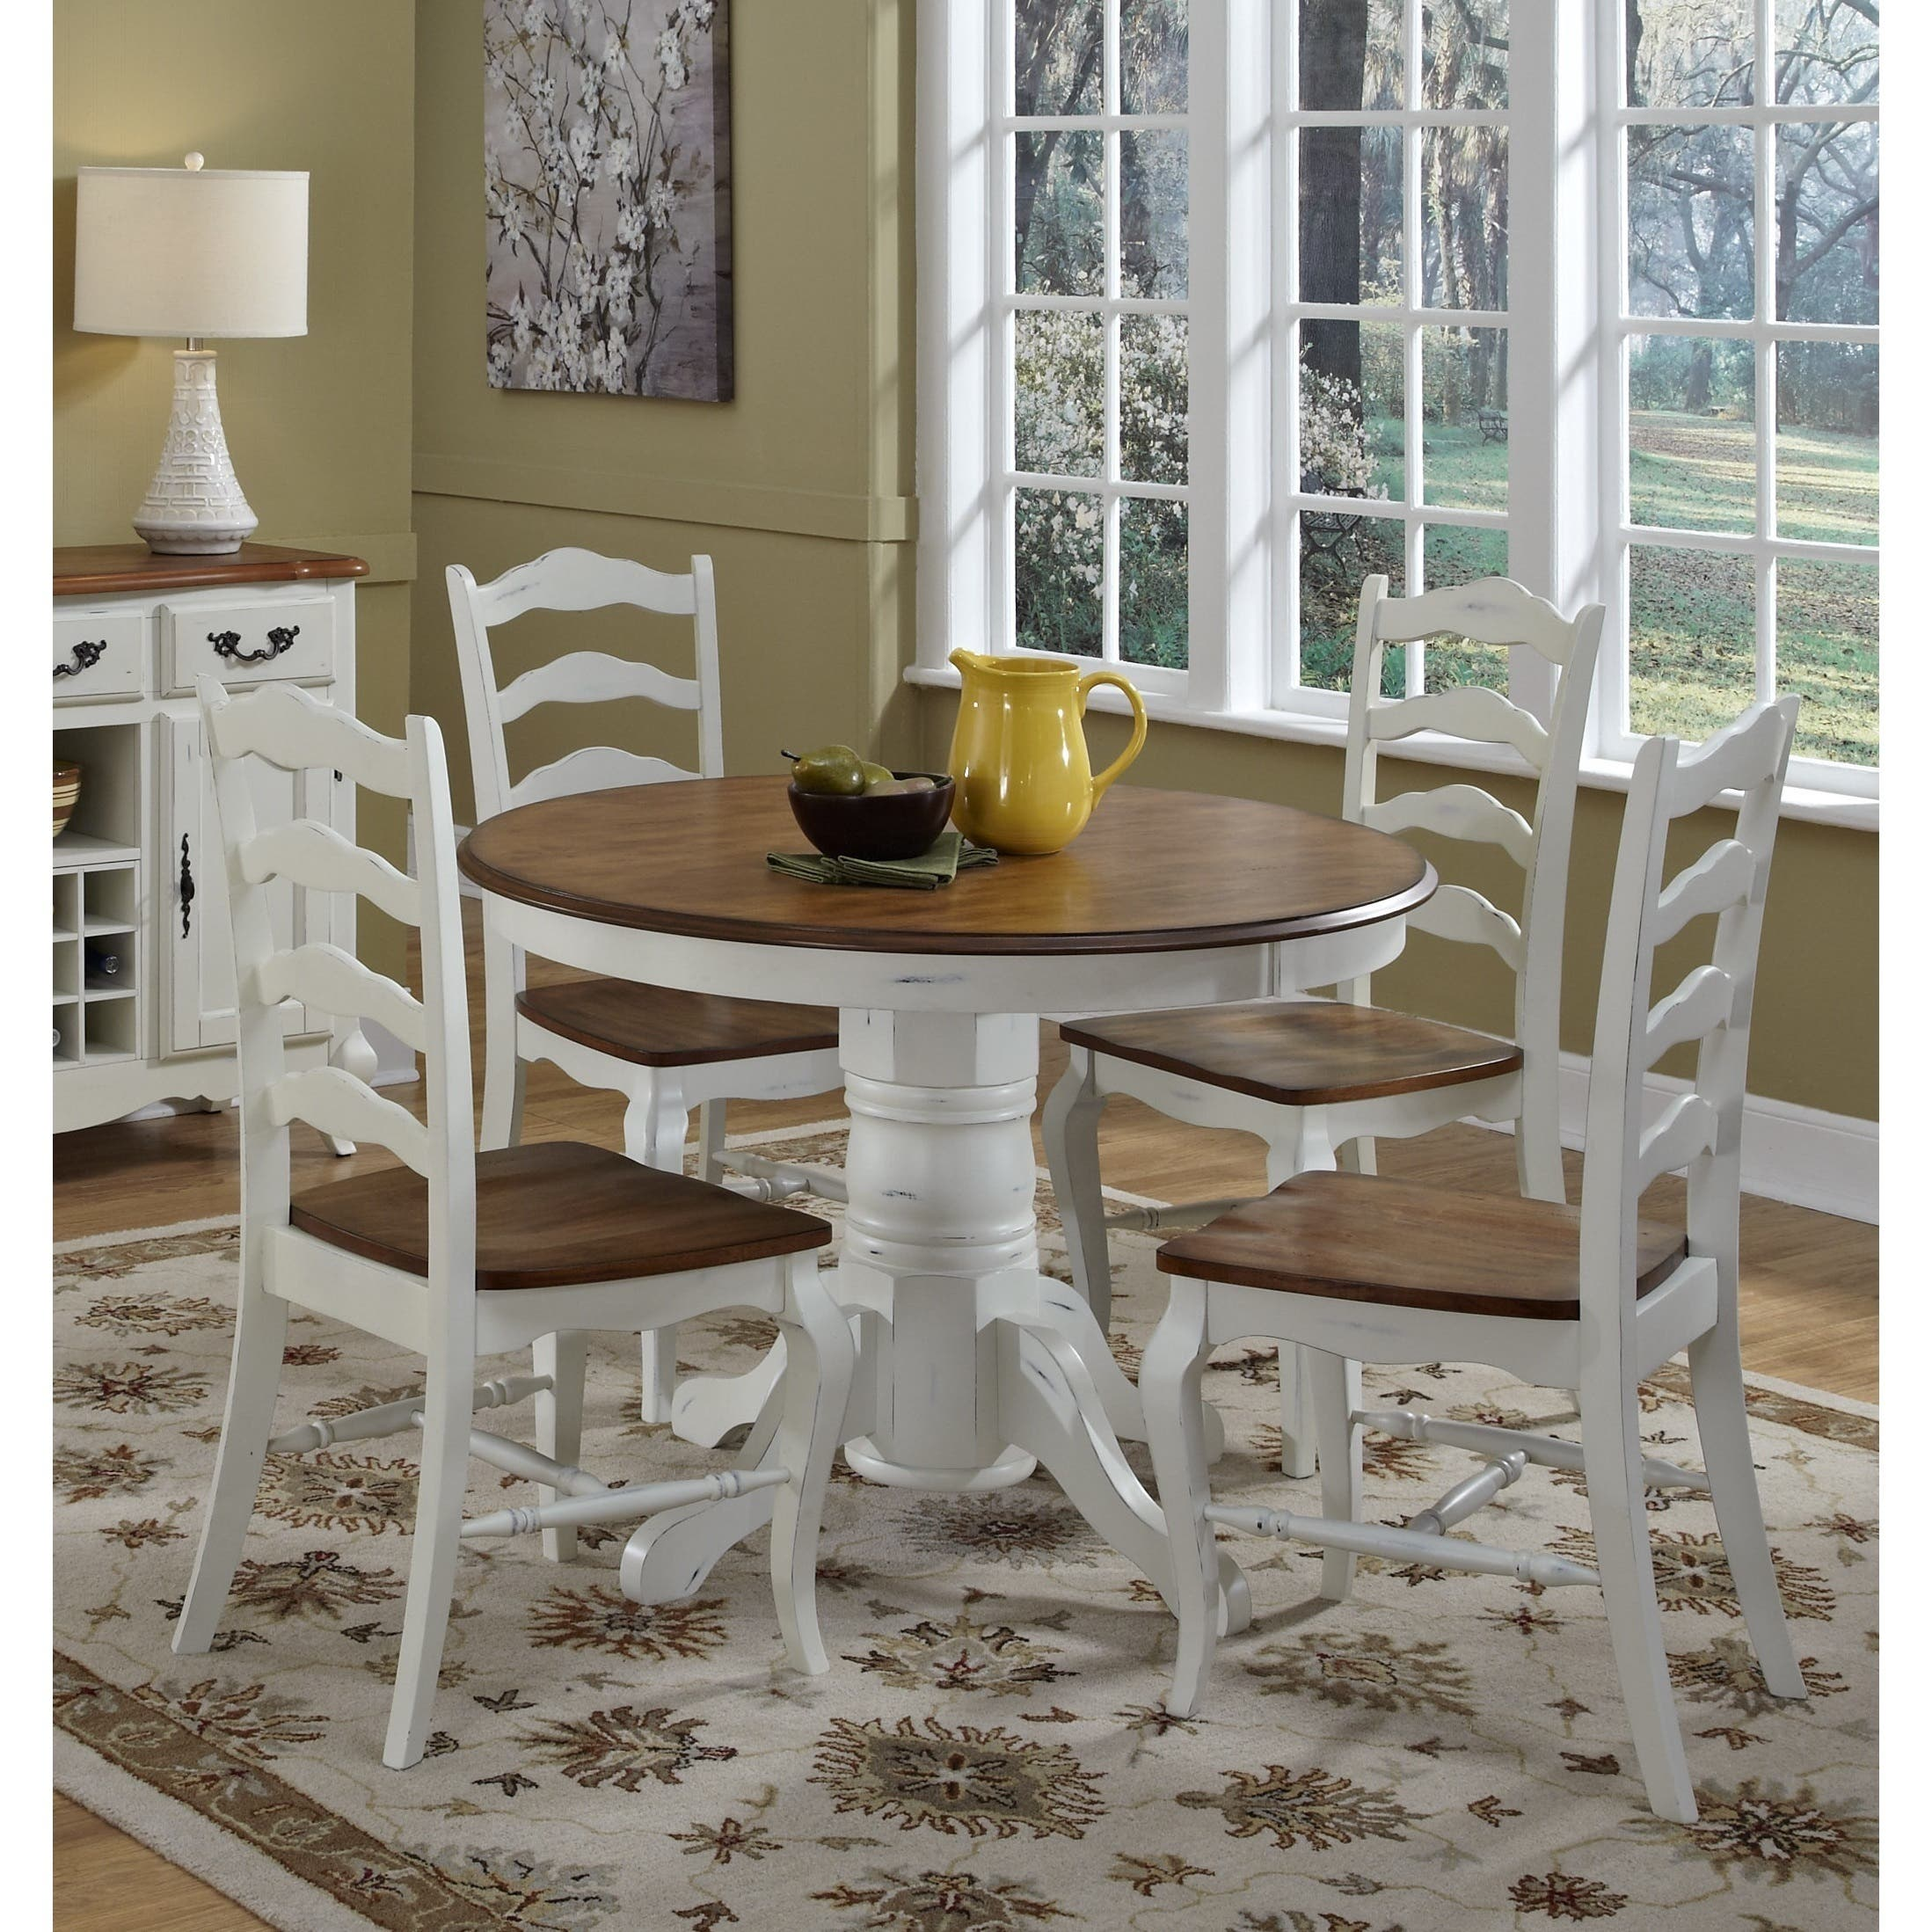 My Best Buy Dining: Buy Kitchen & Dining Room Tables Online At Overstock